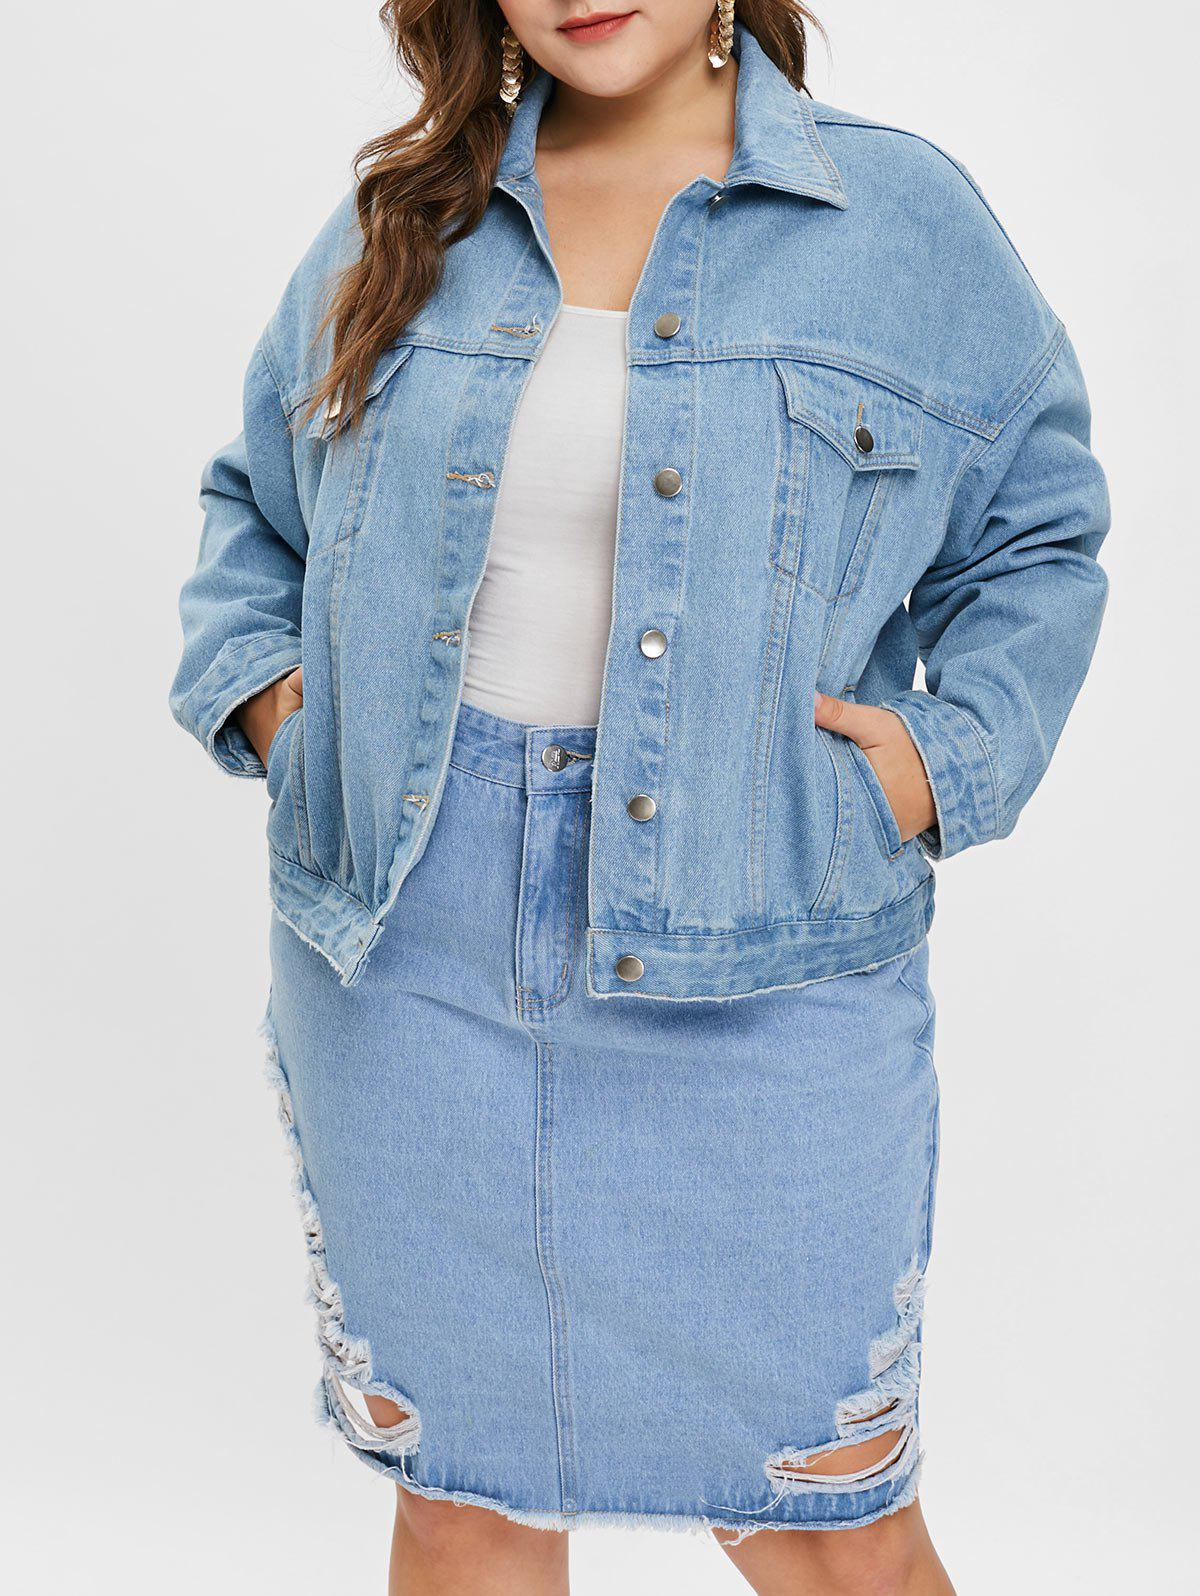 442c55cfa45 53% OFF] Plus Size Drop Shoulder Denim Jacket | Rosegal